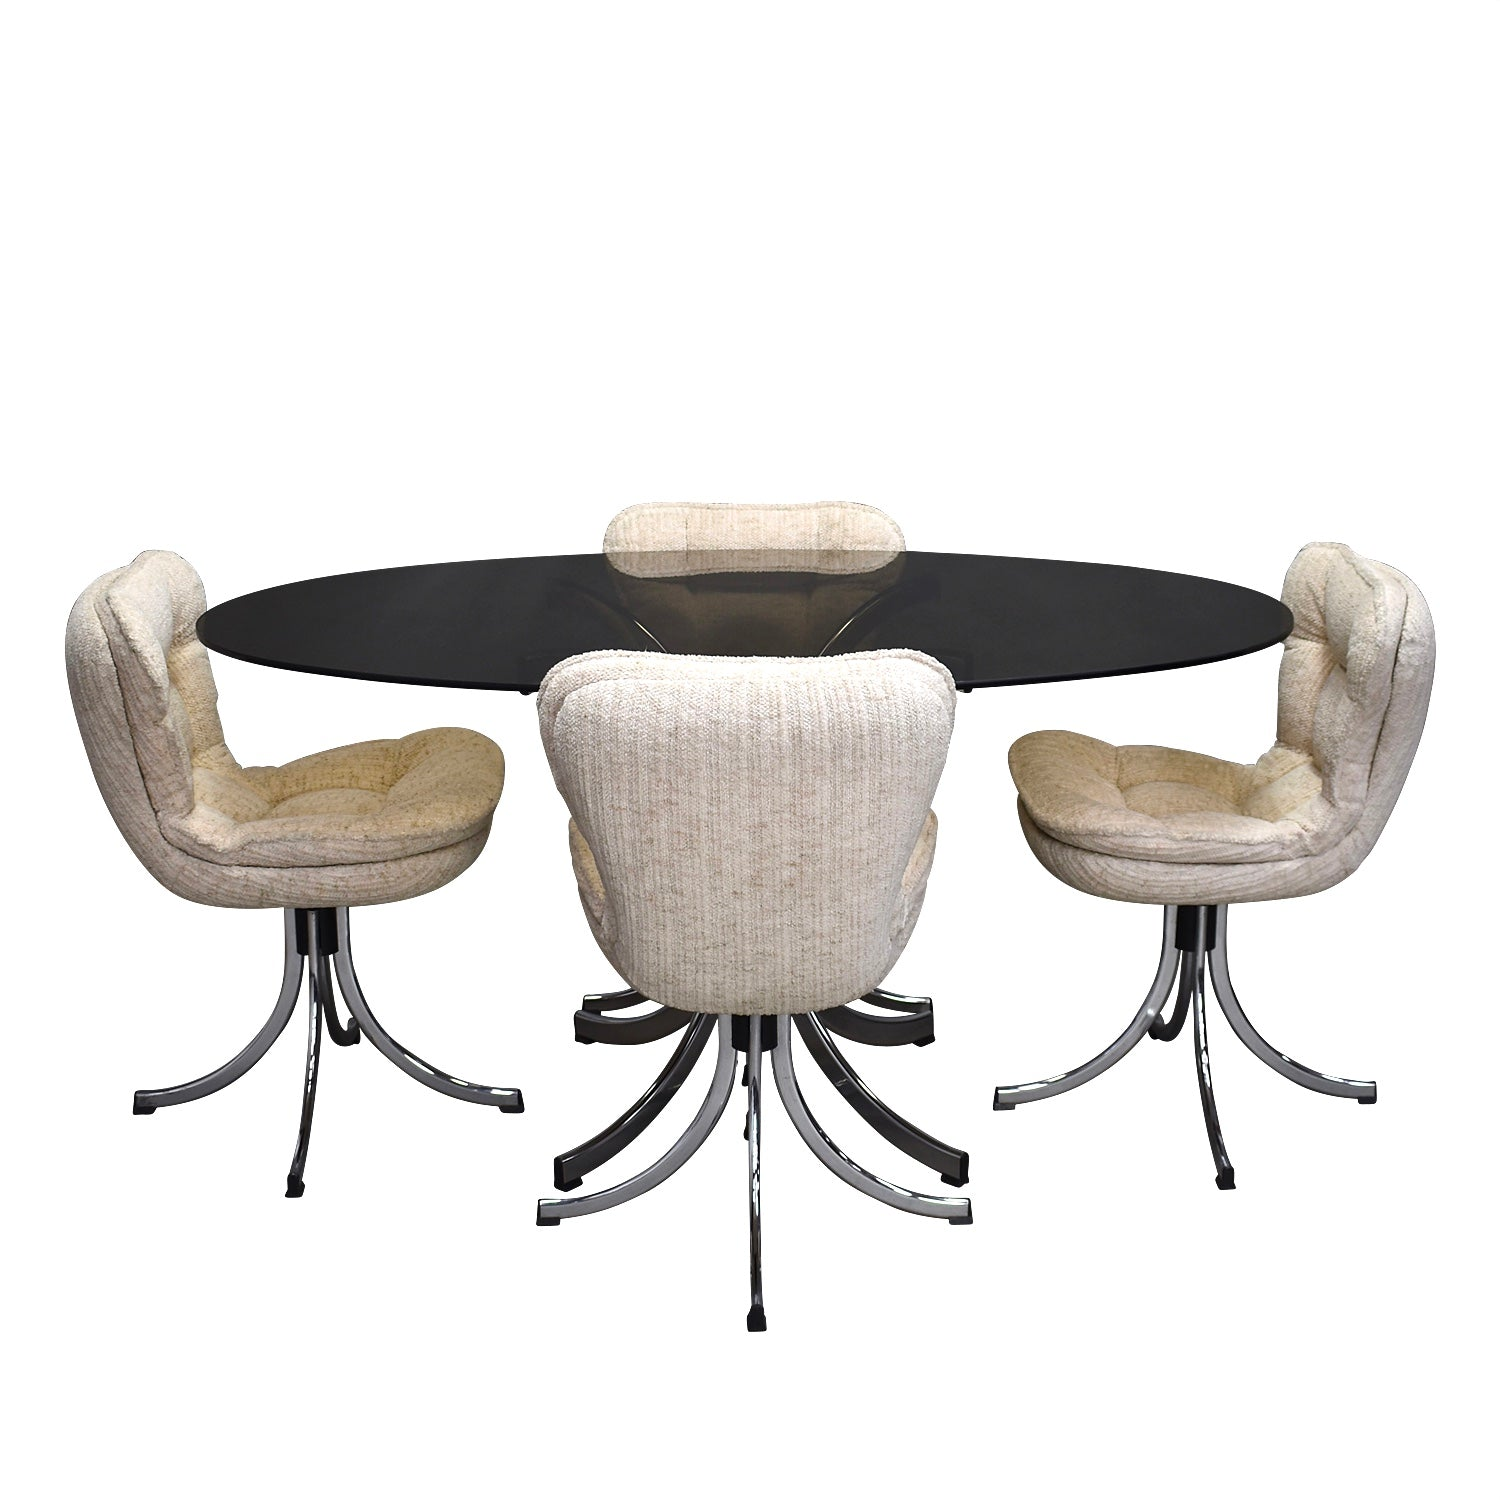 Tweedehands design Italian oval dining set in chrome and smoked glass, circa 1970